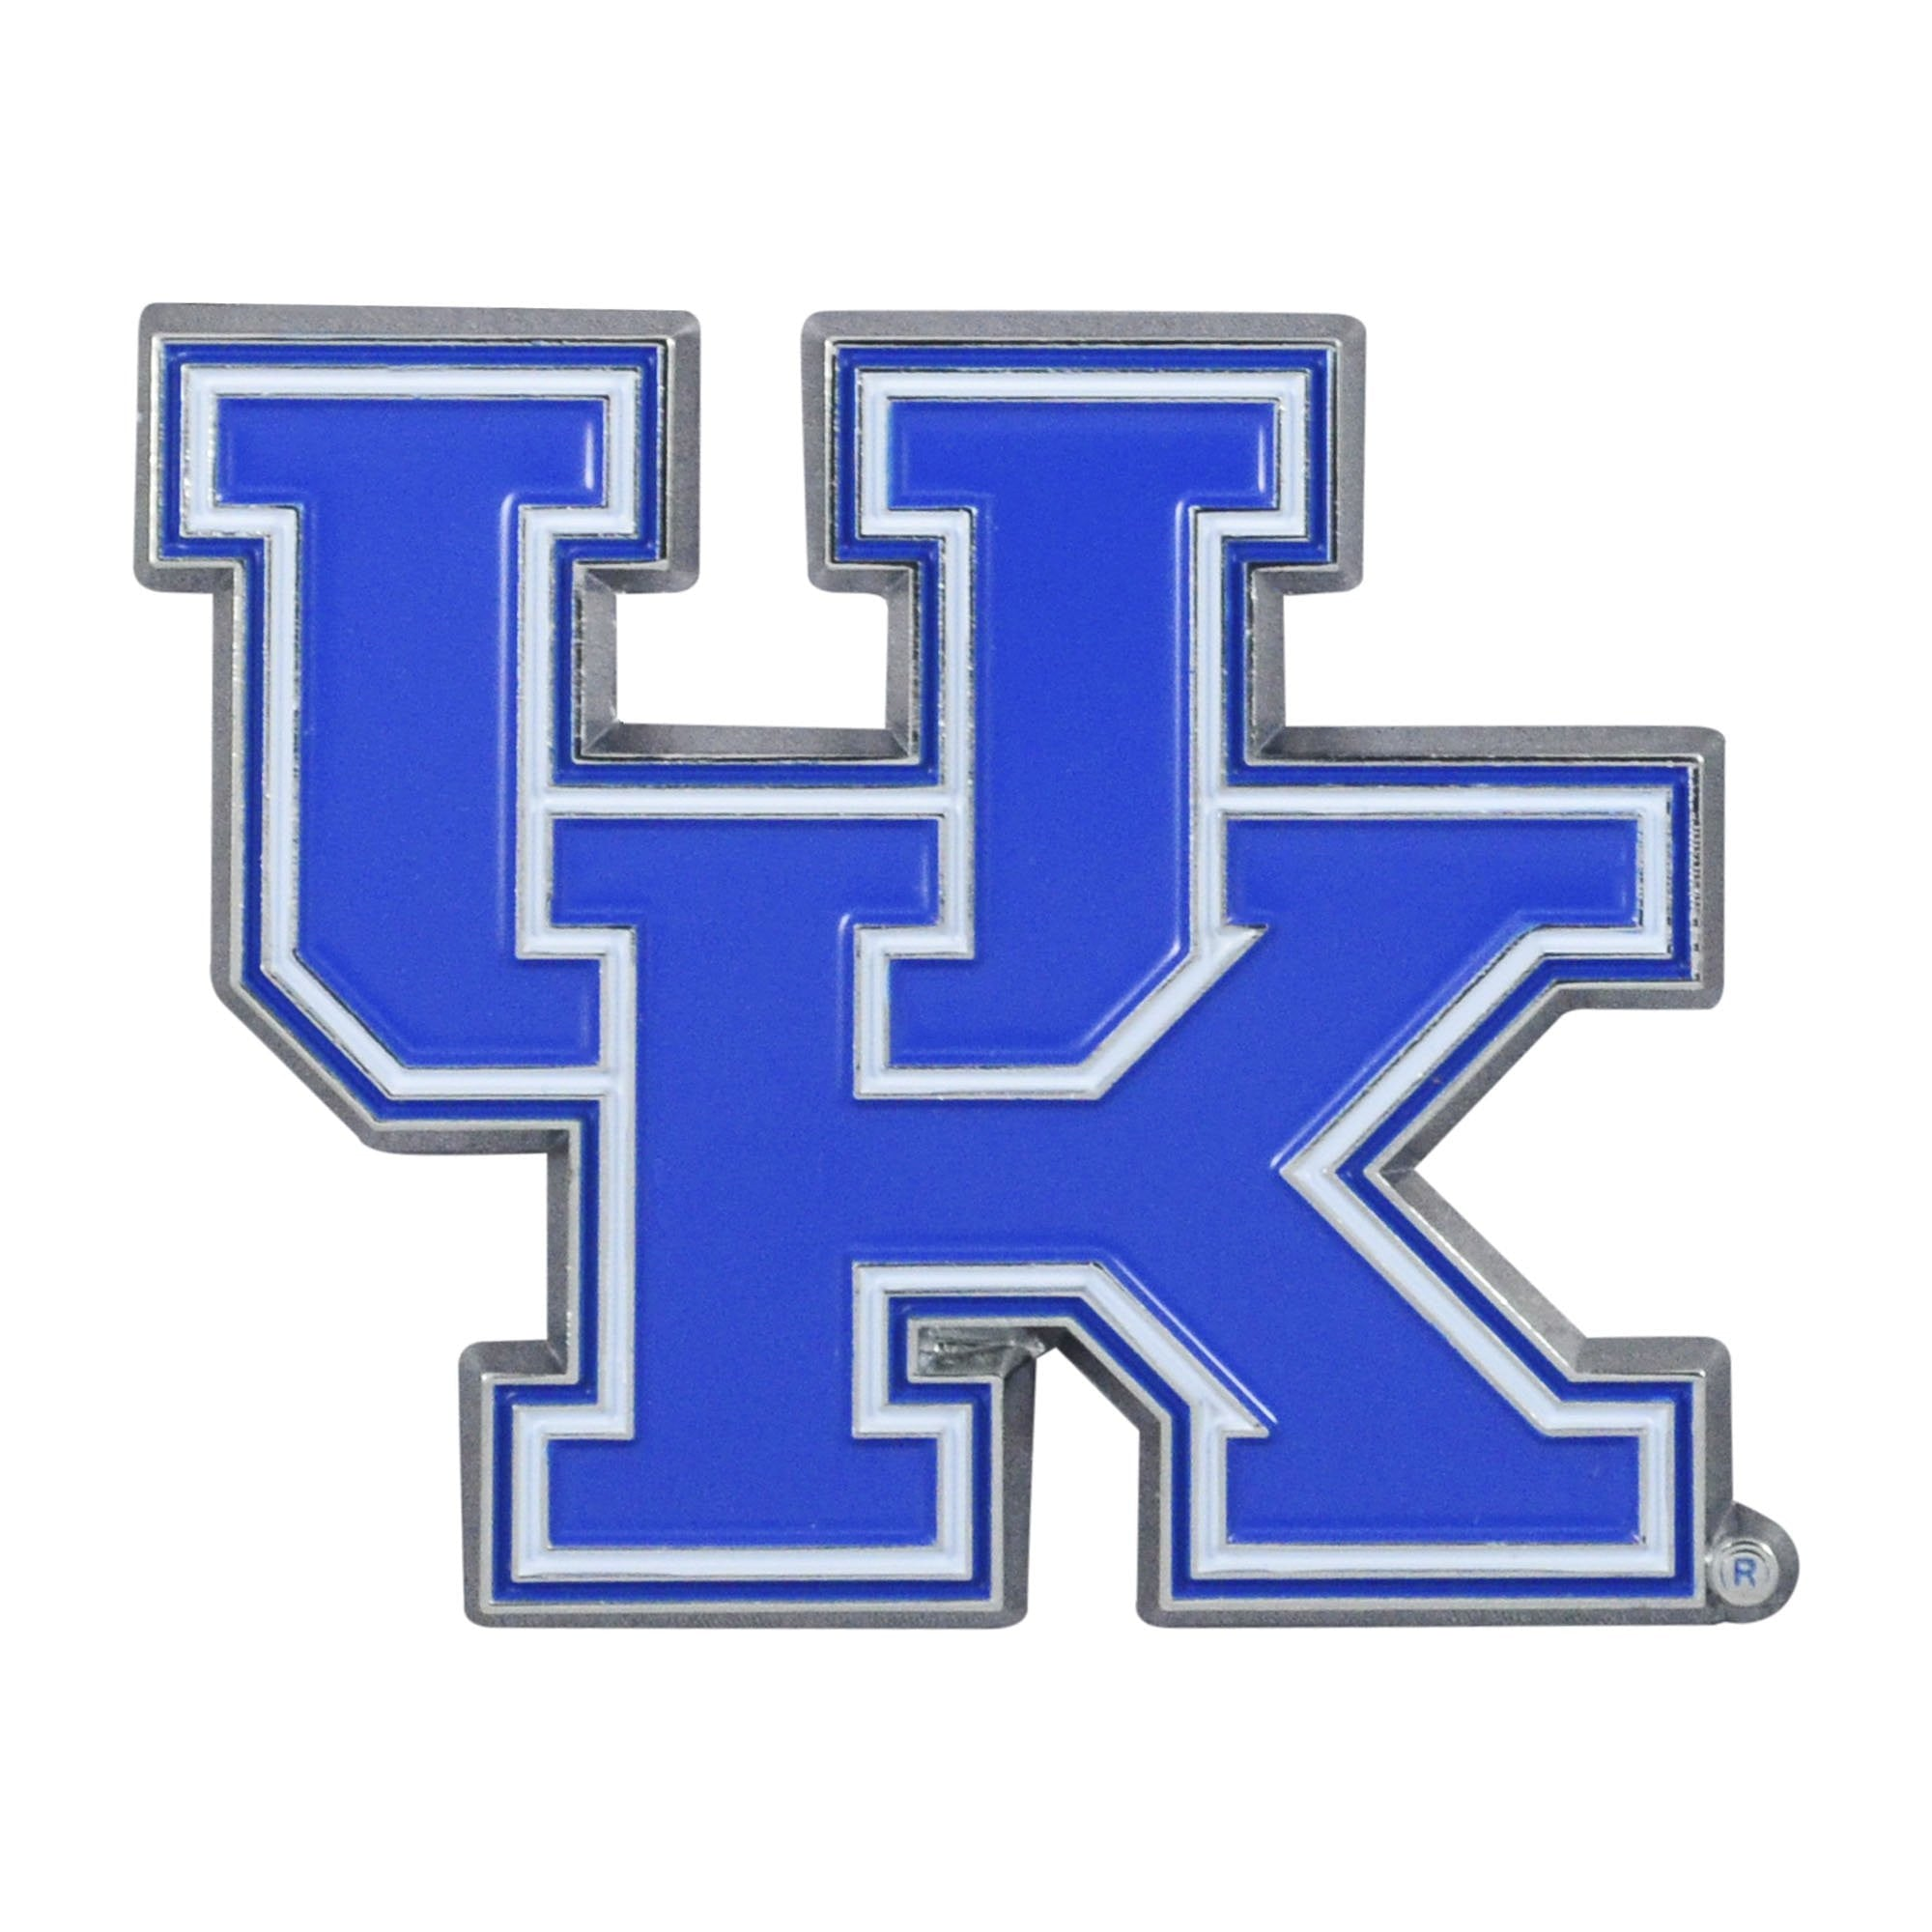 Kentucky Wildcats 3D Color Emblem